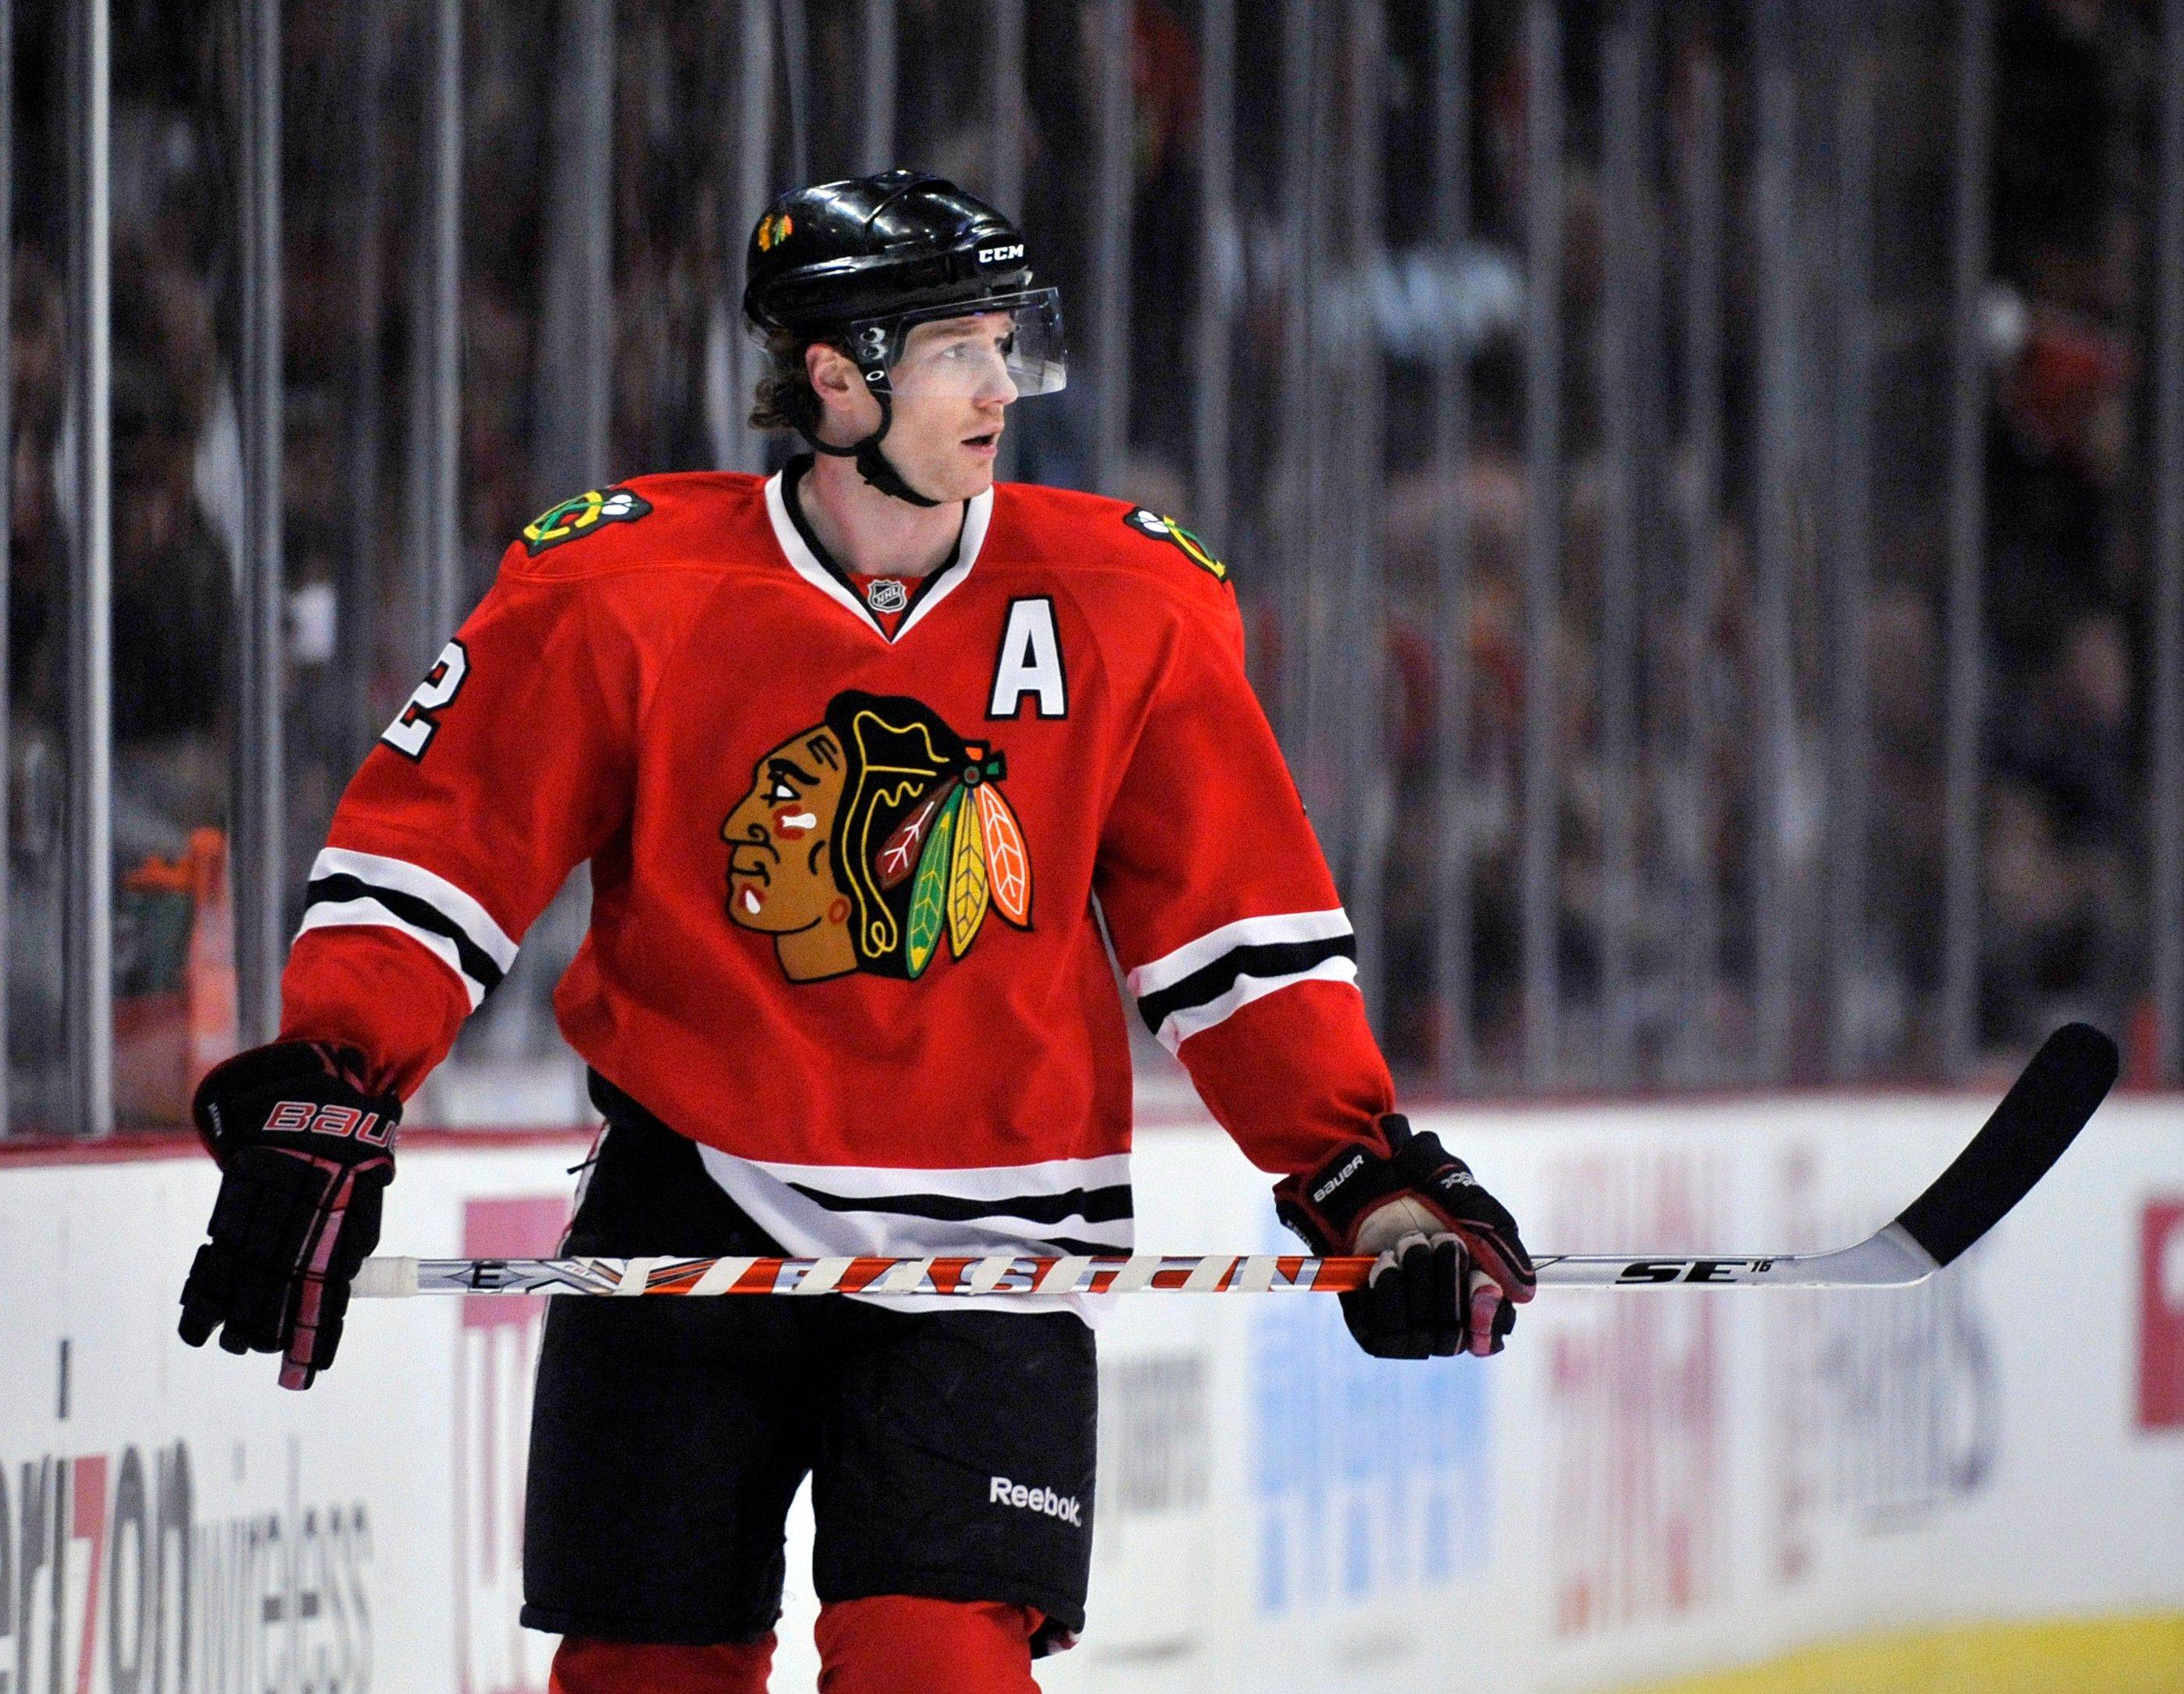 With last season behind him, Blackhawks defenseman Duncan Keith has to get back to being the player he was in the Stanley Cup season.